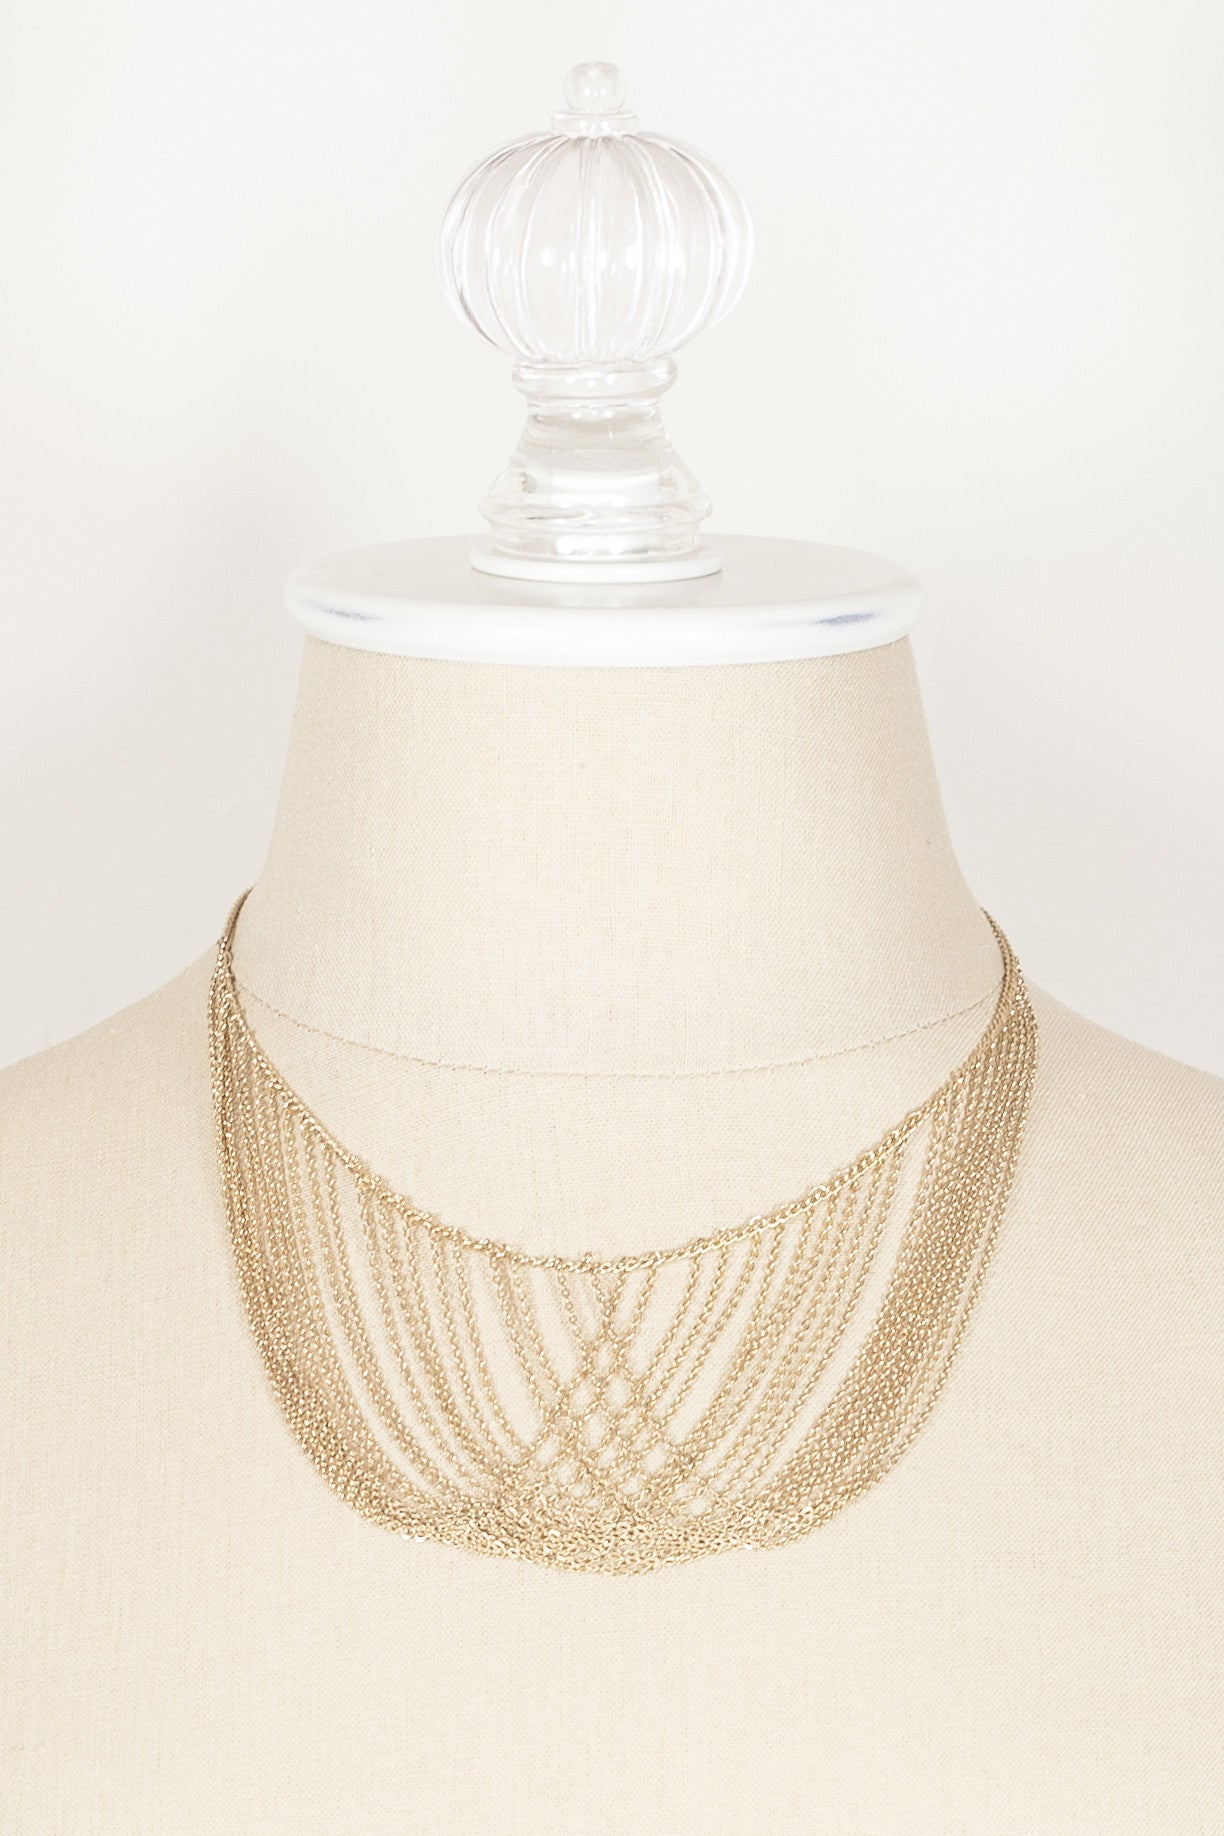 70's__Sarah Coventry__Dainty Multi Strand Necklace